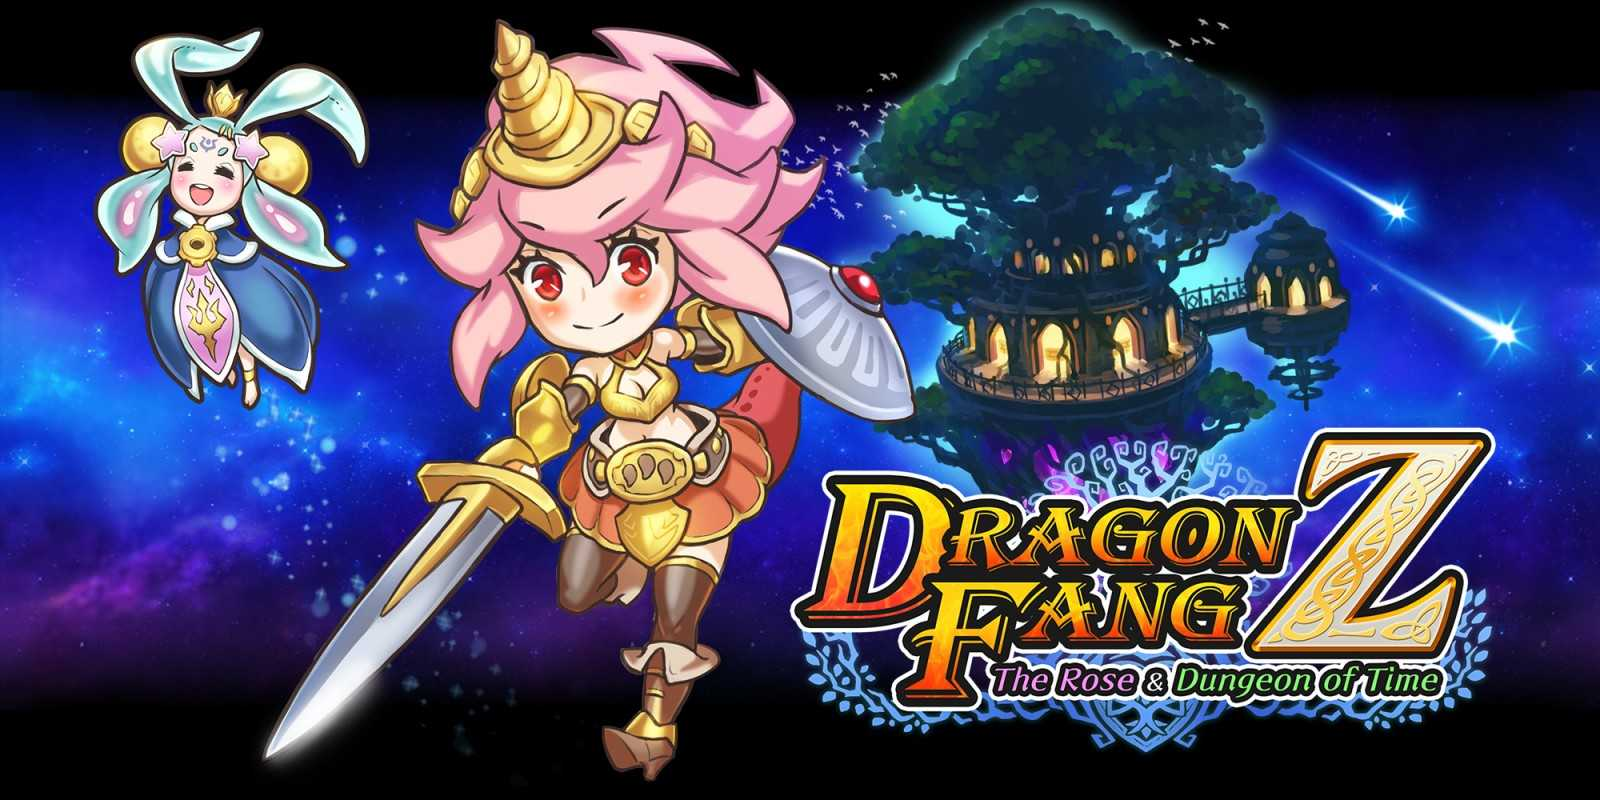 dragonfangz-the-rose-and-dungeon-of-time